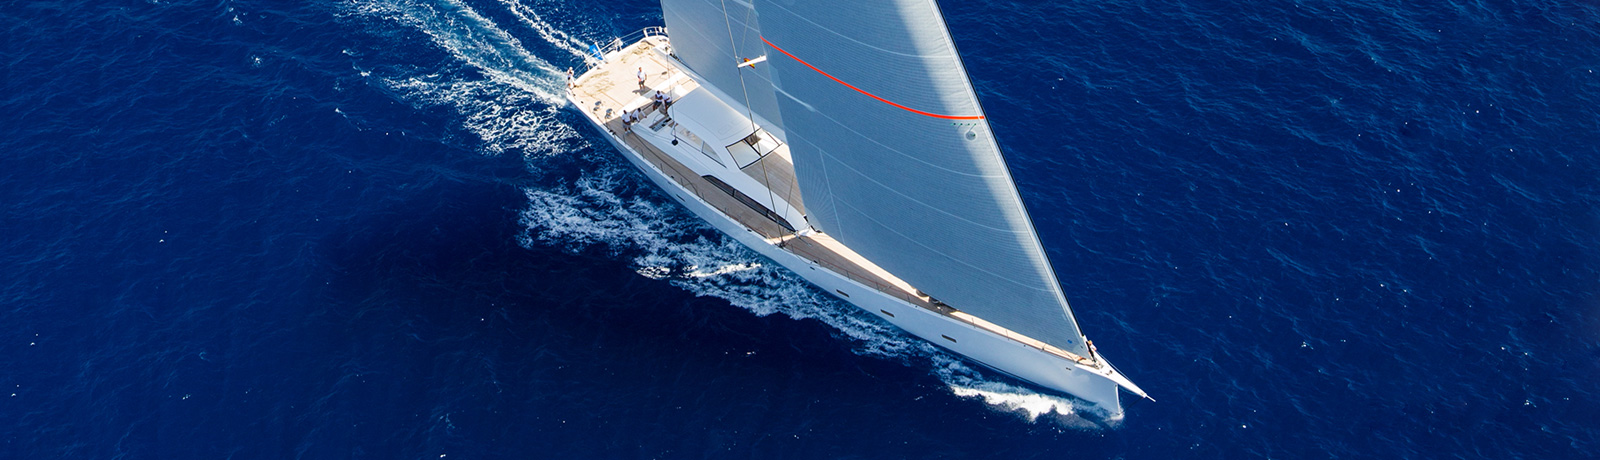 superyacht-sails